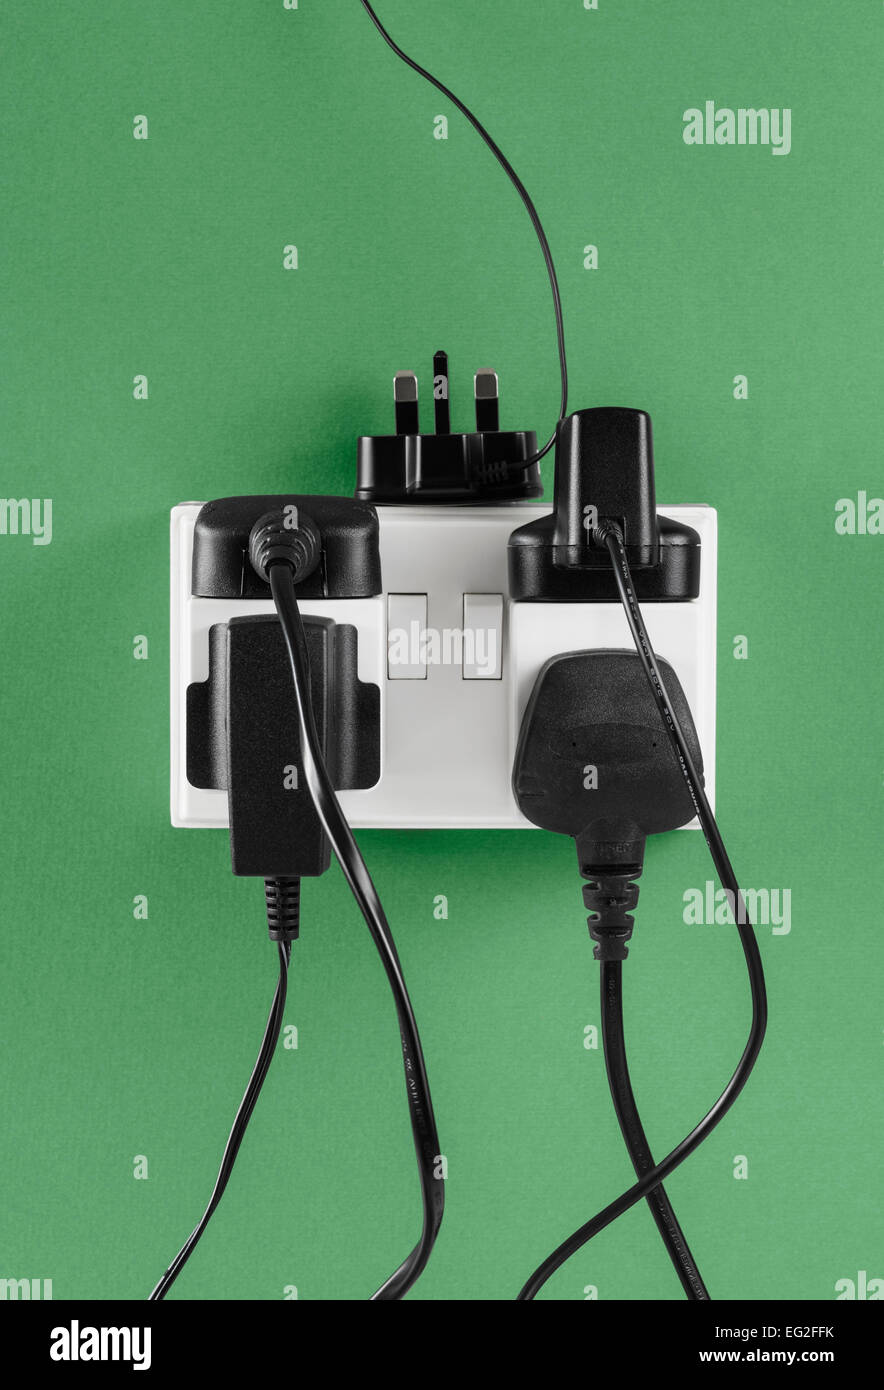 Multiple Chargers plugged in to Wall Socket - Stock Image